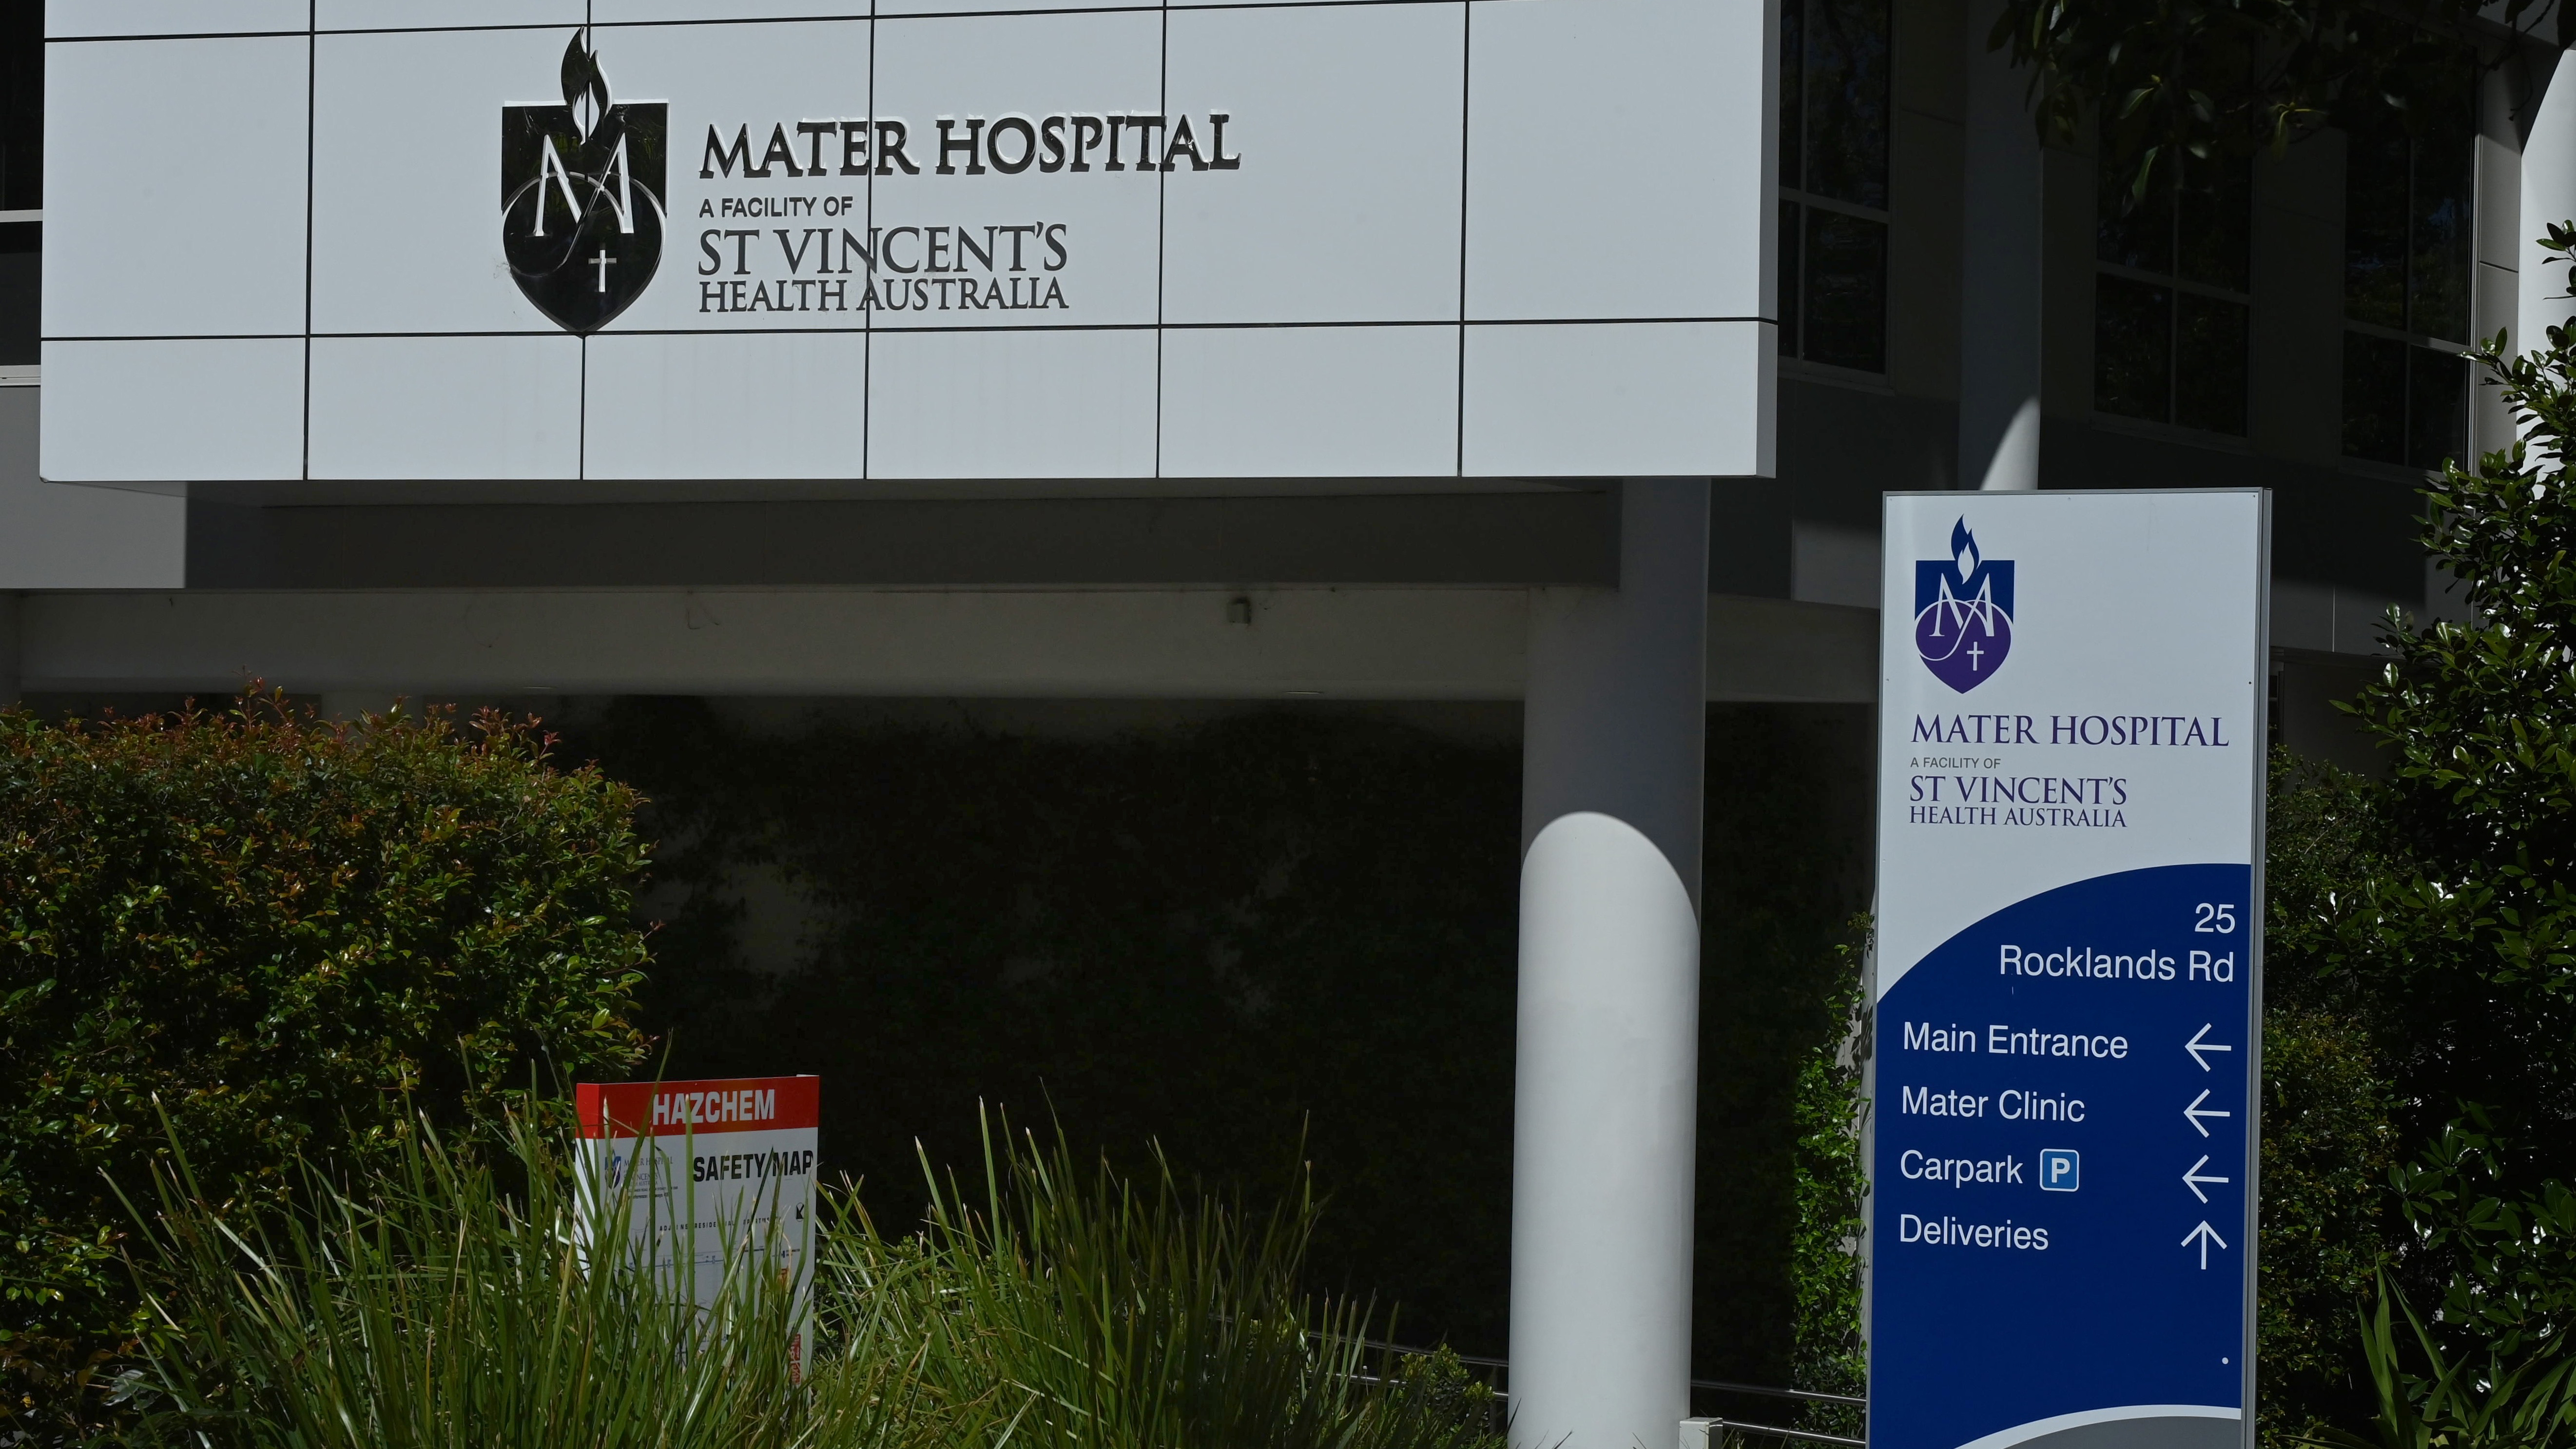 The Mater Hospital on Sydney's North Shore.